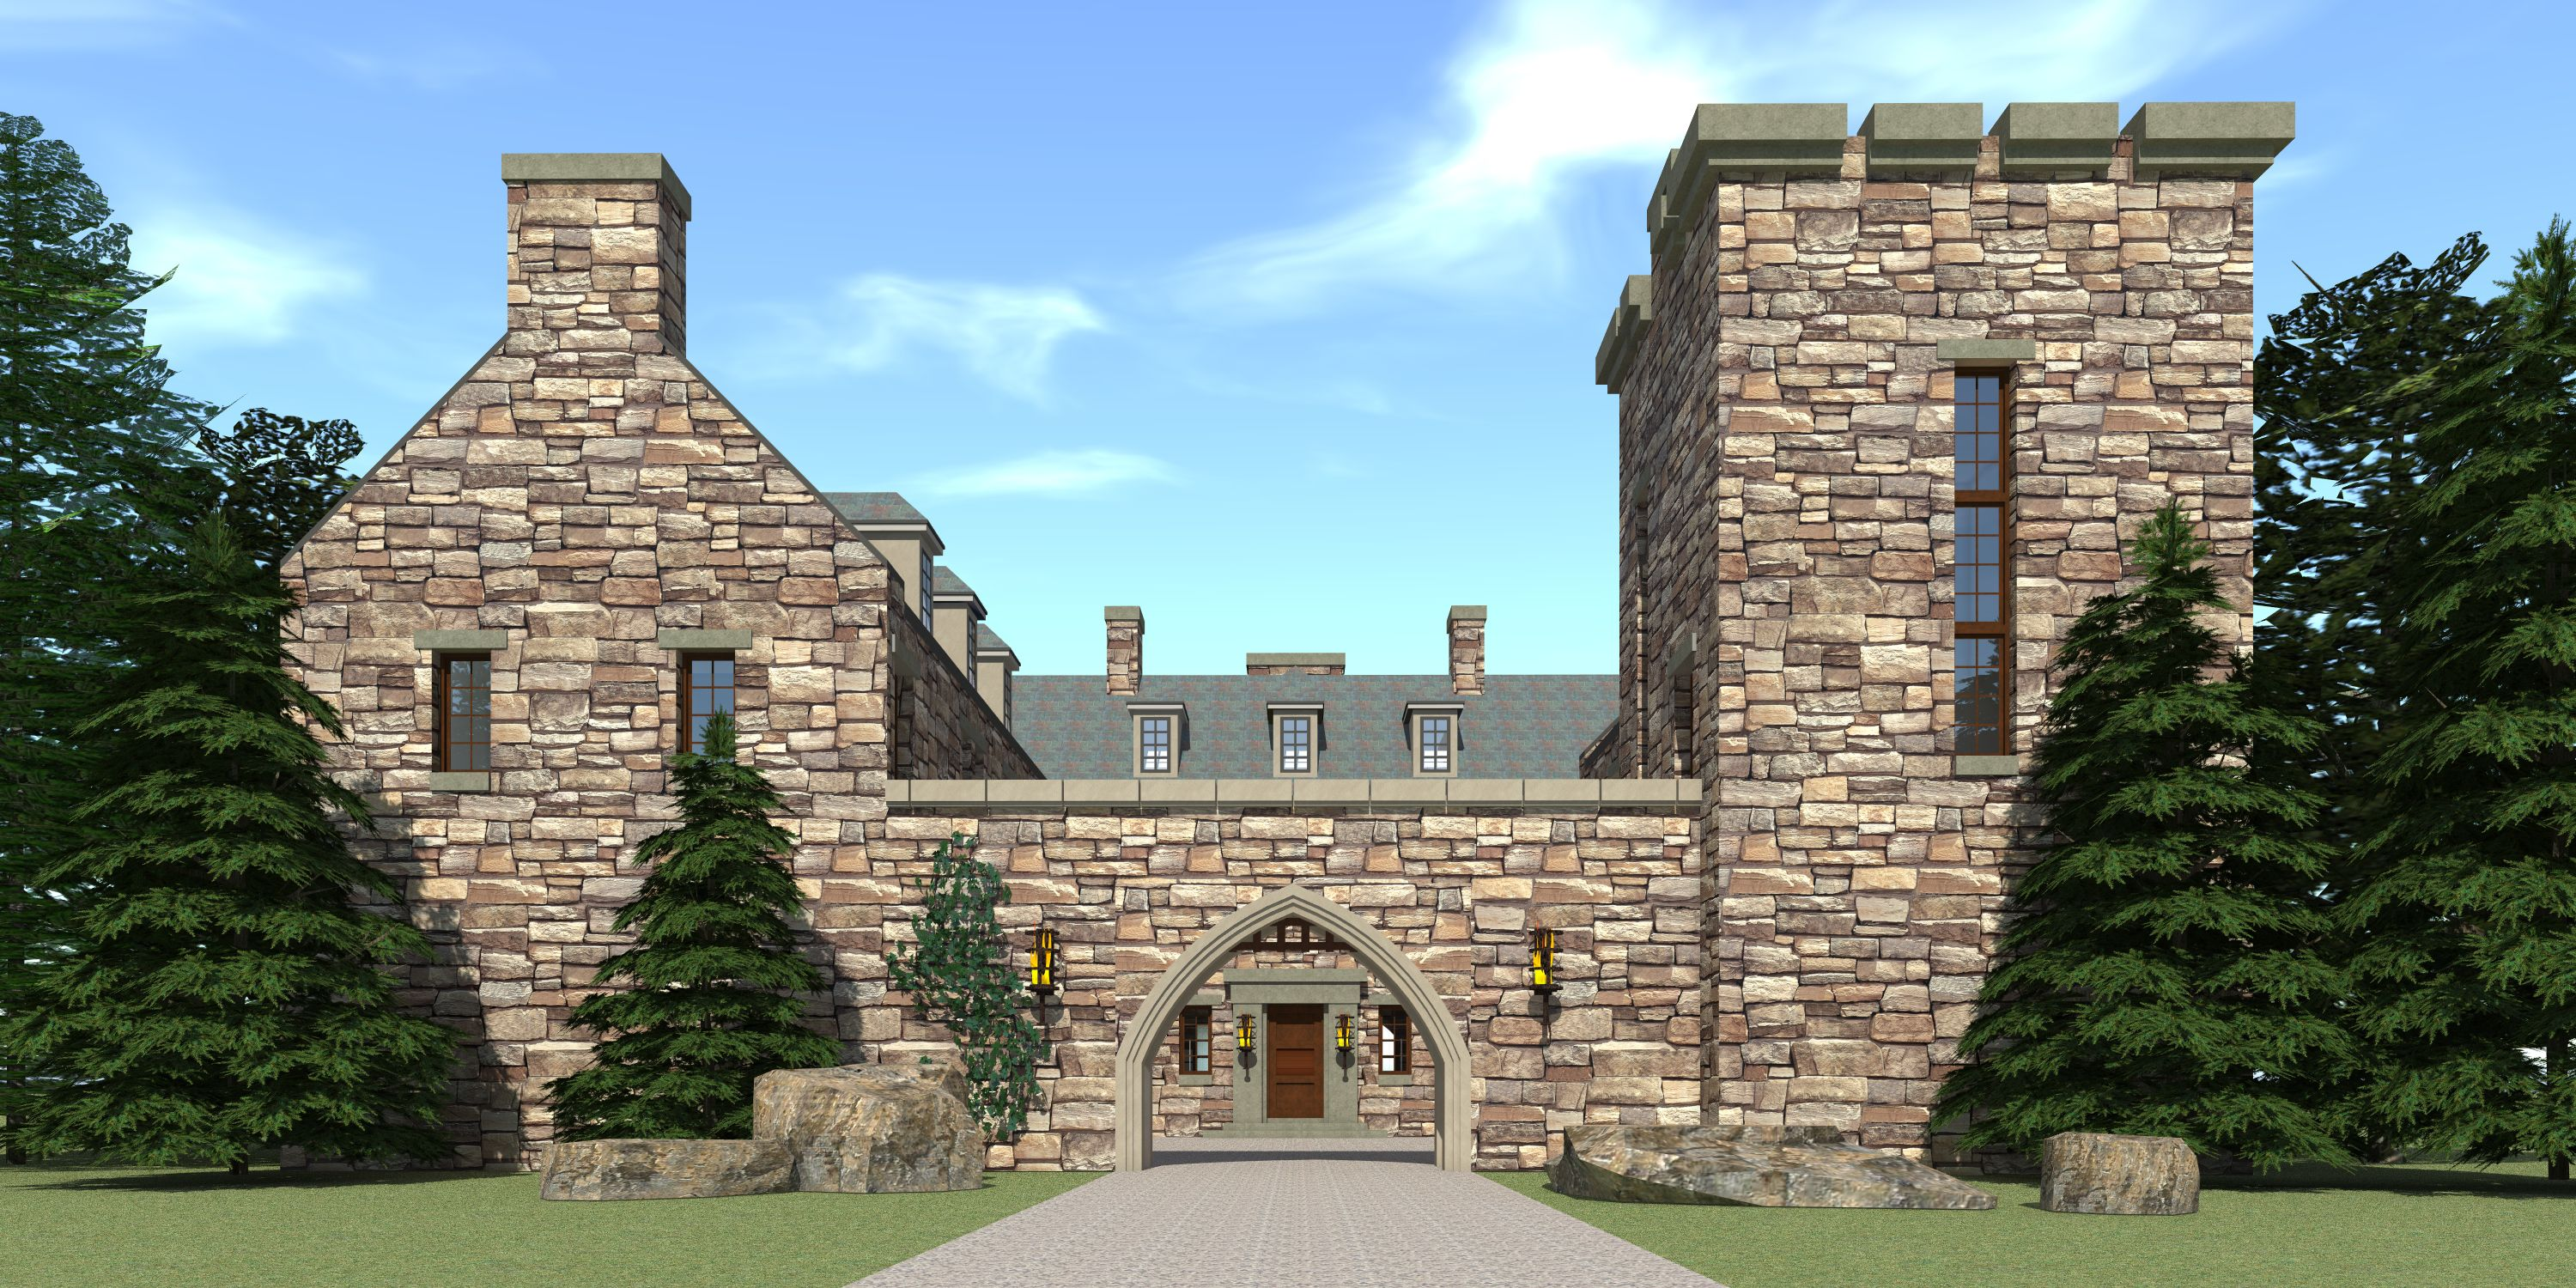 Furthermore medieval manor house on floor plans with central - The Darien Castle Plan In The Distant Past Tyree Men Were Warriors Fighting To Shop House Planscastle